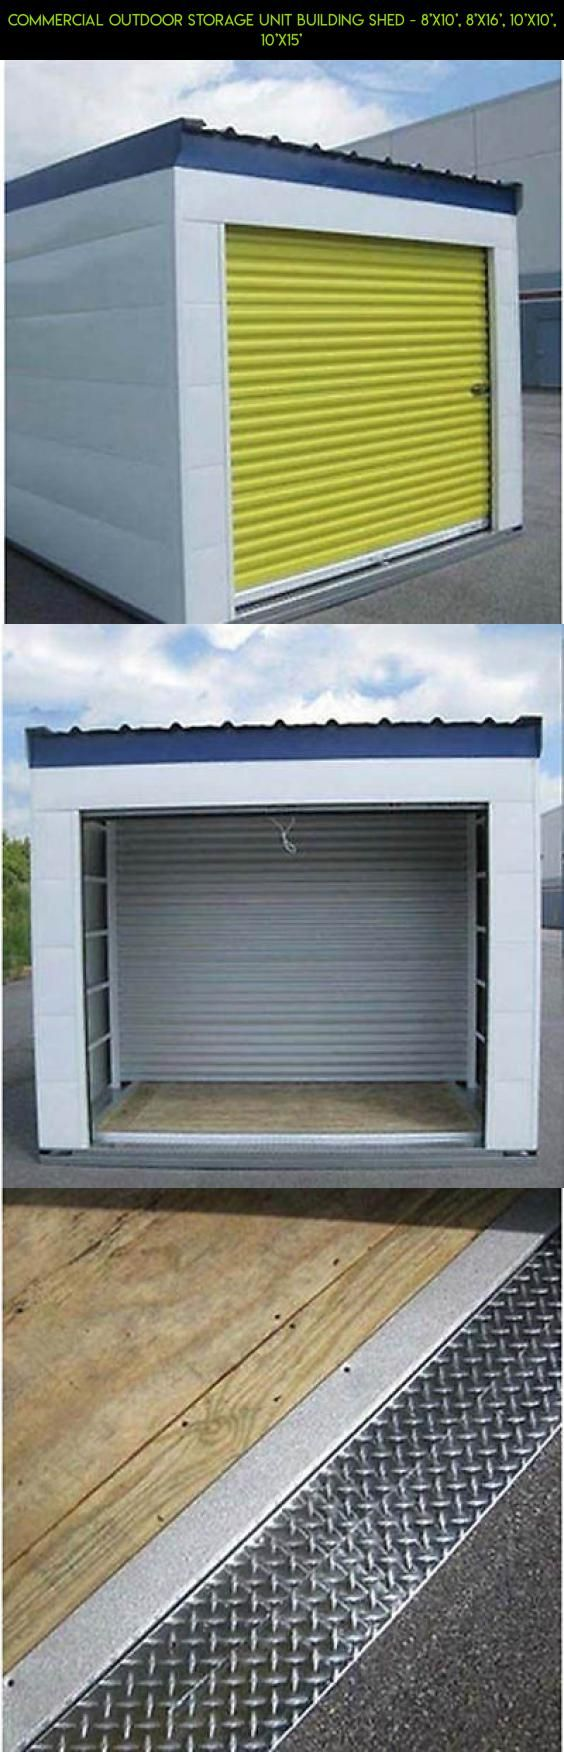 Commercial Outdoor Storage Unit Building Shed 8 X10 8 X16 10 X10 10 X15 Kit Camera Products Sh Shed Plans 8x10 Outdoor Storage Units Shed Plans